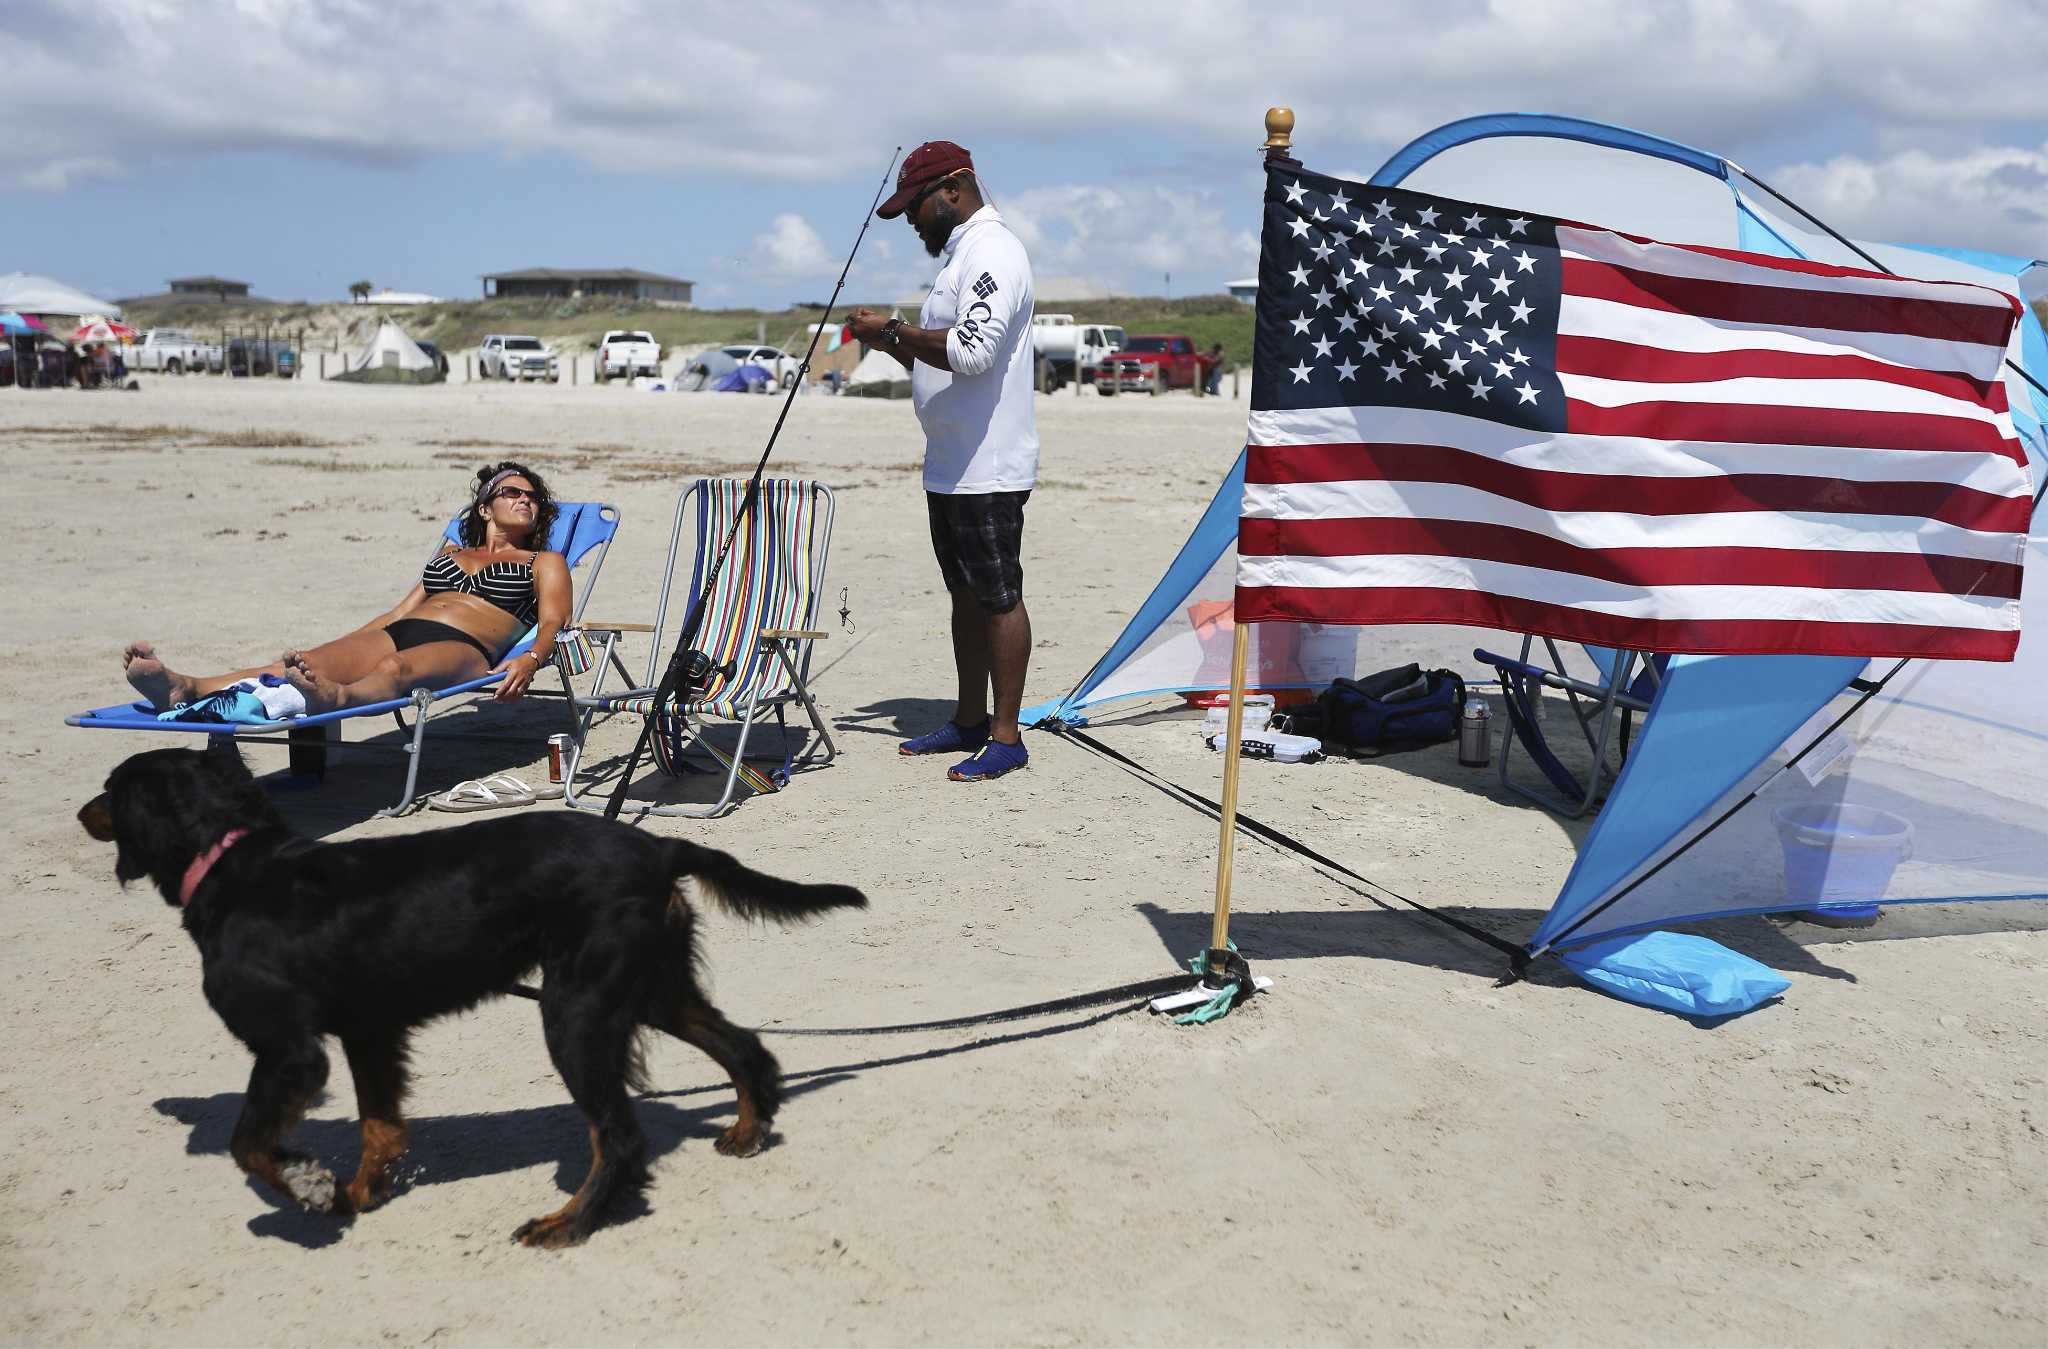 Less crowded Port Aransas welcomes tourists on first big summer